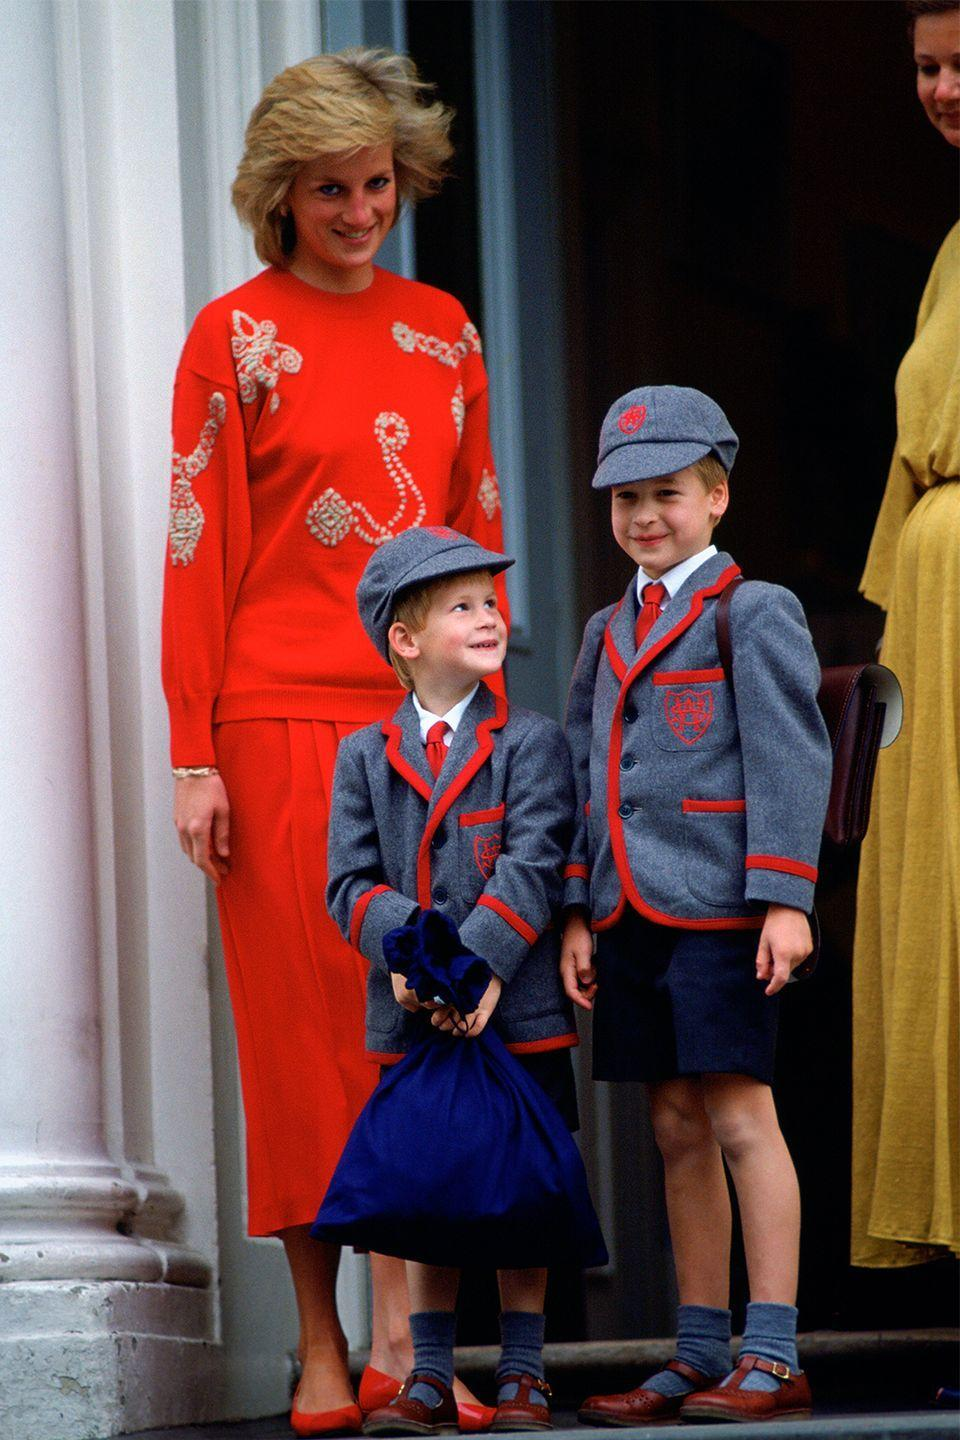 <p>Prince Charles broke royal tradition when he was sent to a prep school at eight years old (since, generally, royal children opted for private tutors), but Princess Diana took it one step further by sending both William and Harry to nursery school. <br></p>